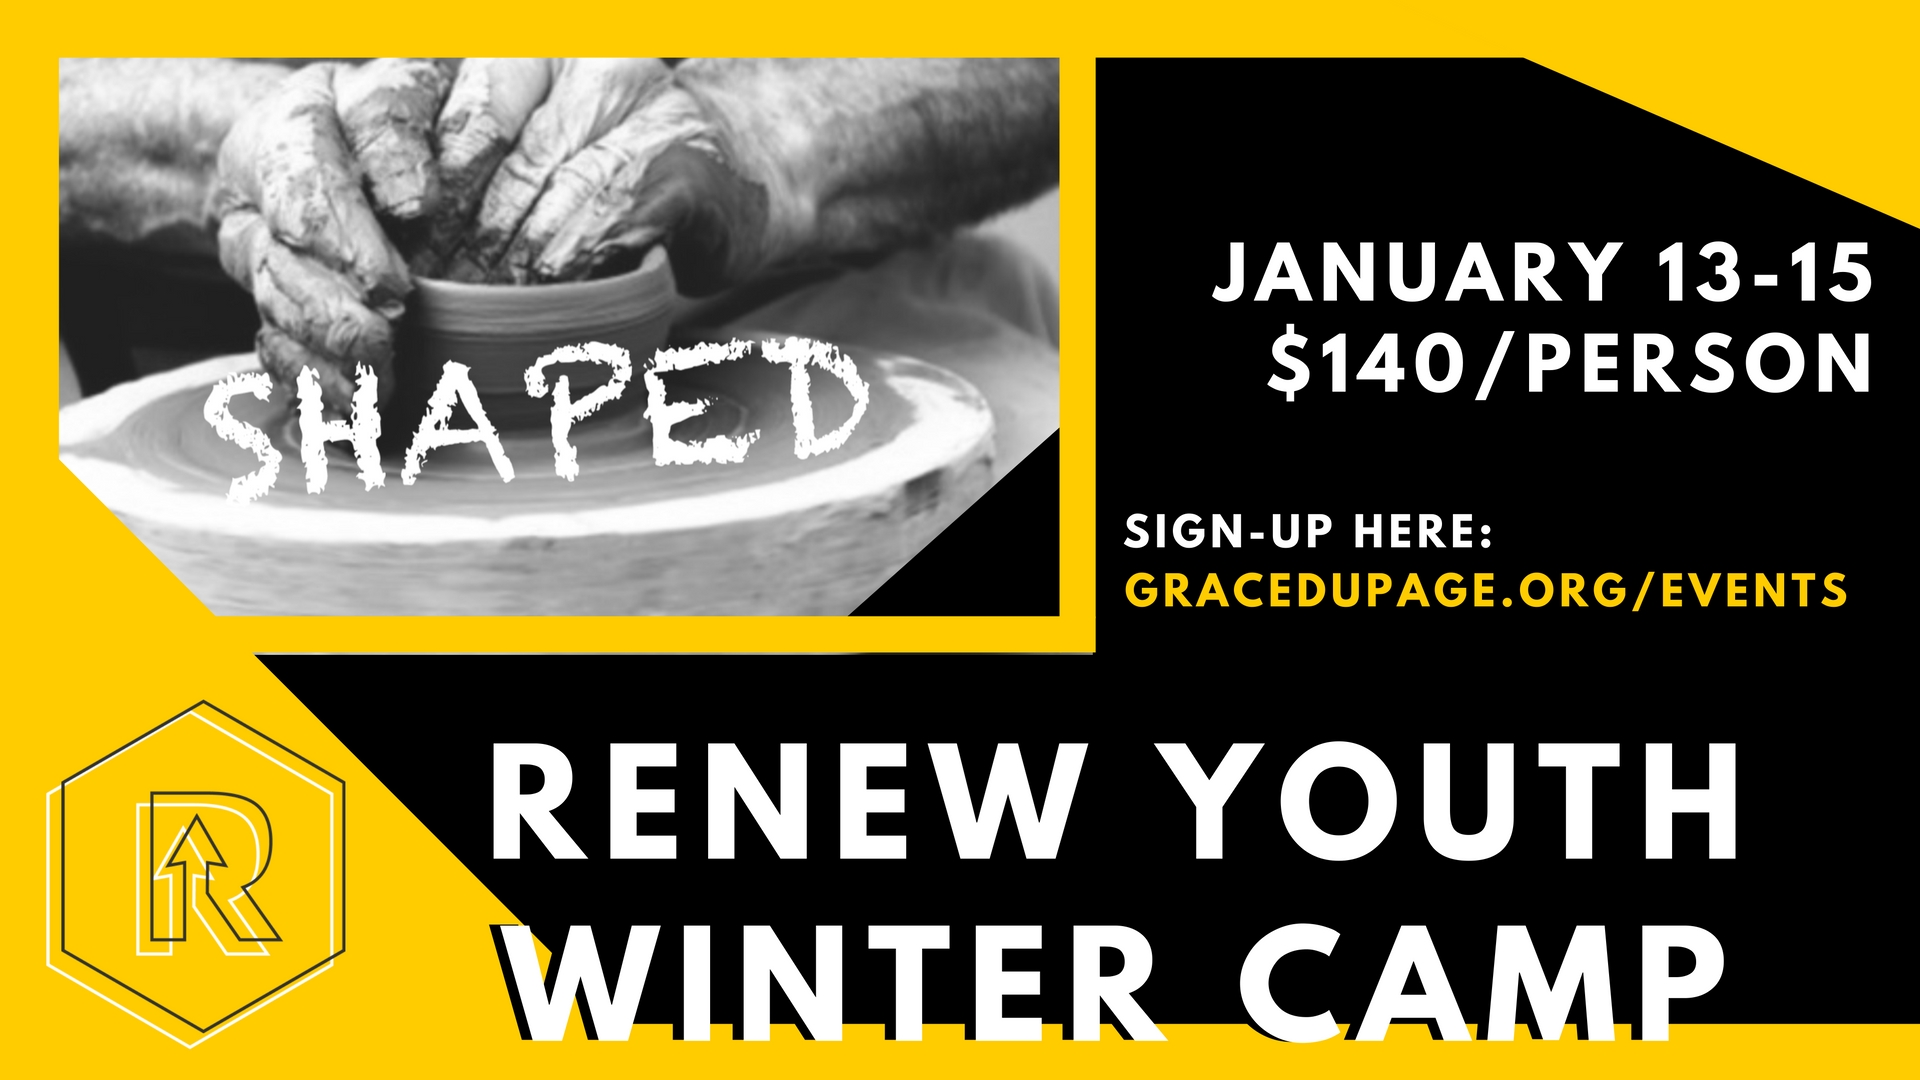 Join us for our annual Winter Camp! We're headed to Wisconsin for a weekend of snow, fun, and studying God's Word. The cost is $140 per person and the dates are January 13th - Jan 15th. All Middle School and High School Students are invited. You can sign up by clicking the button below!